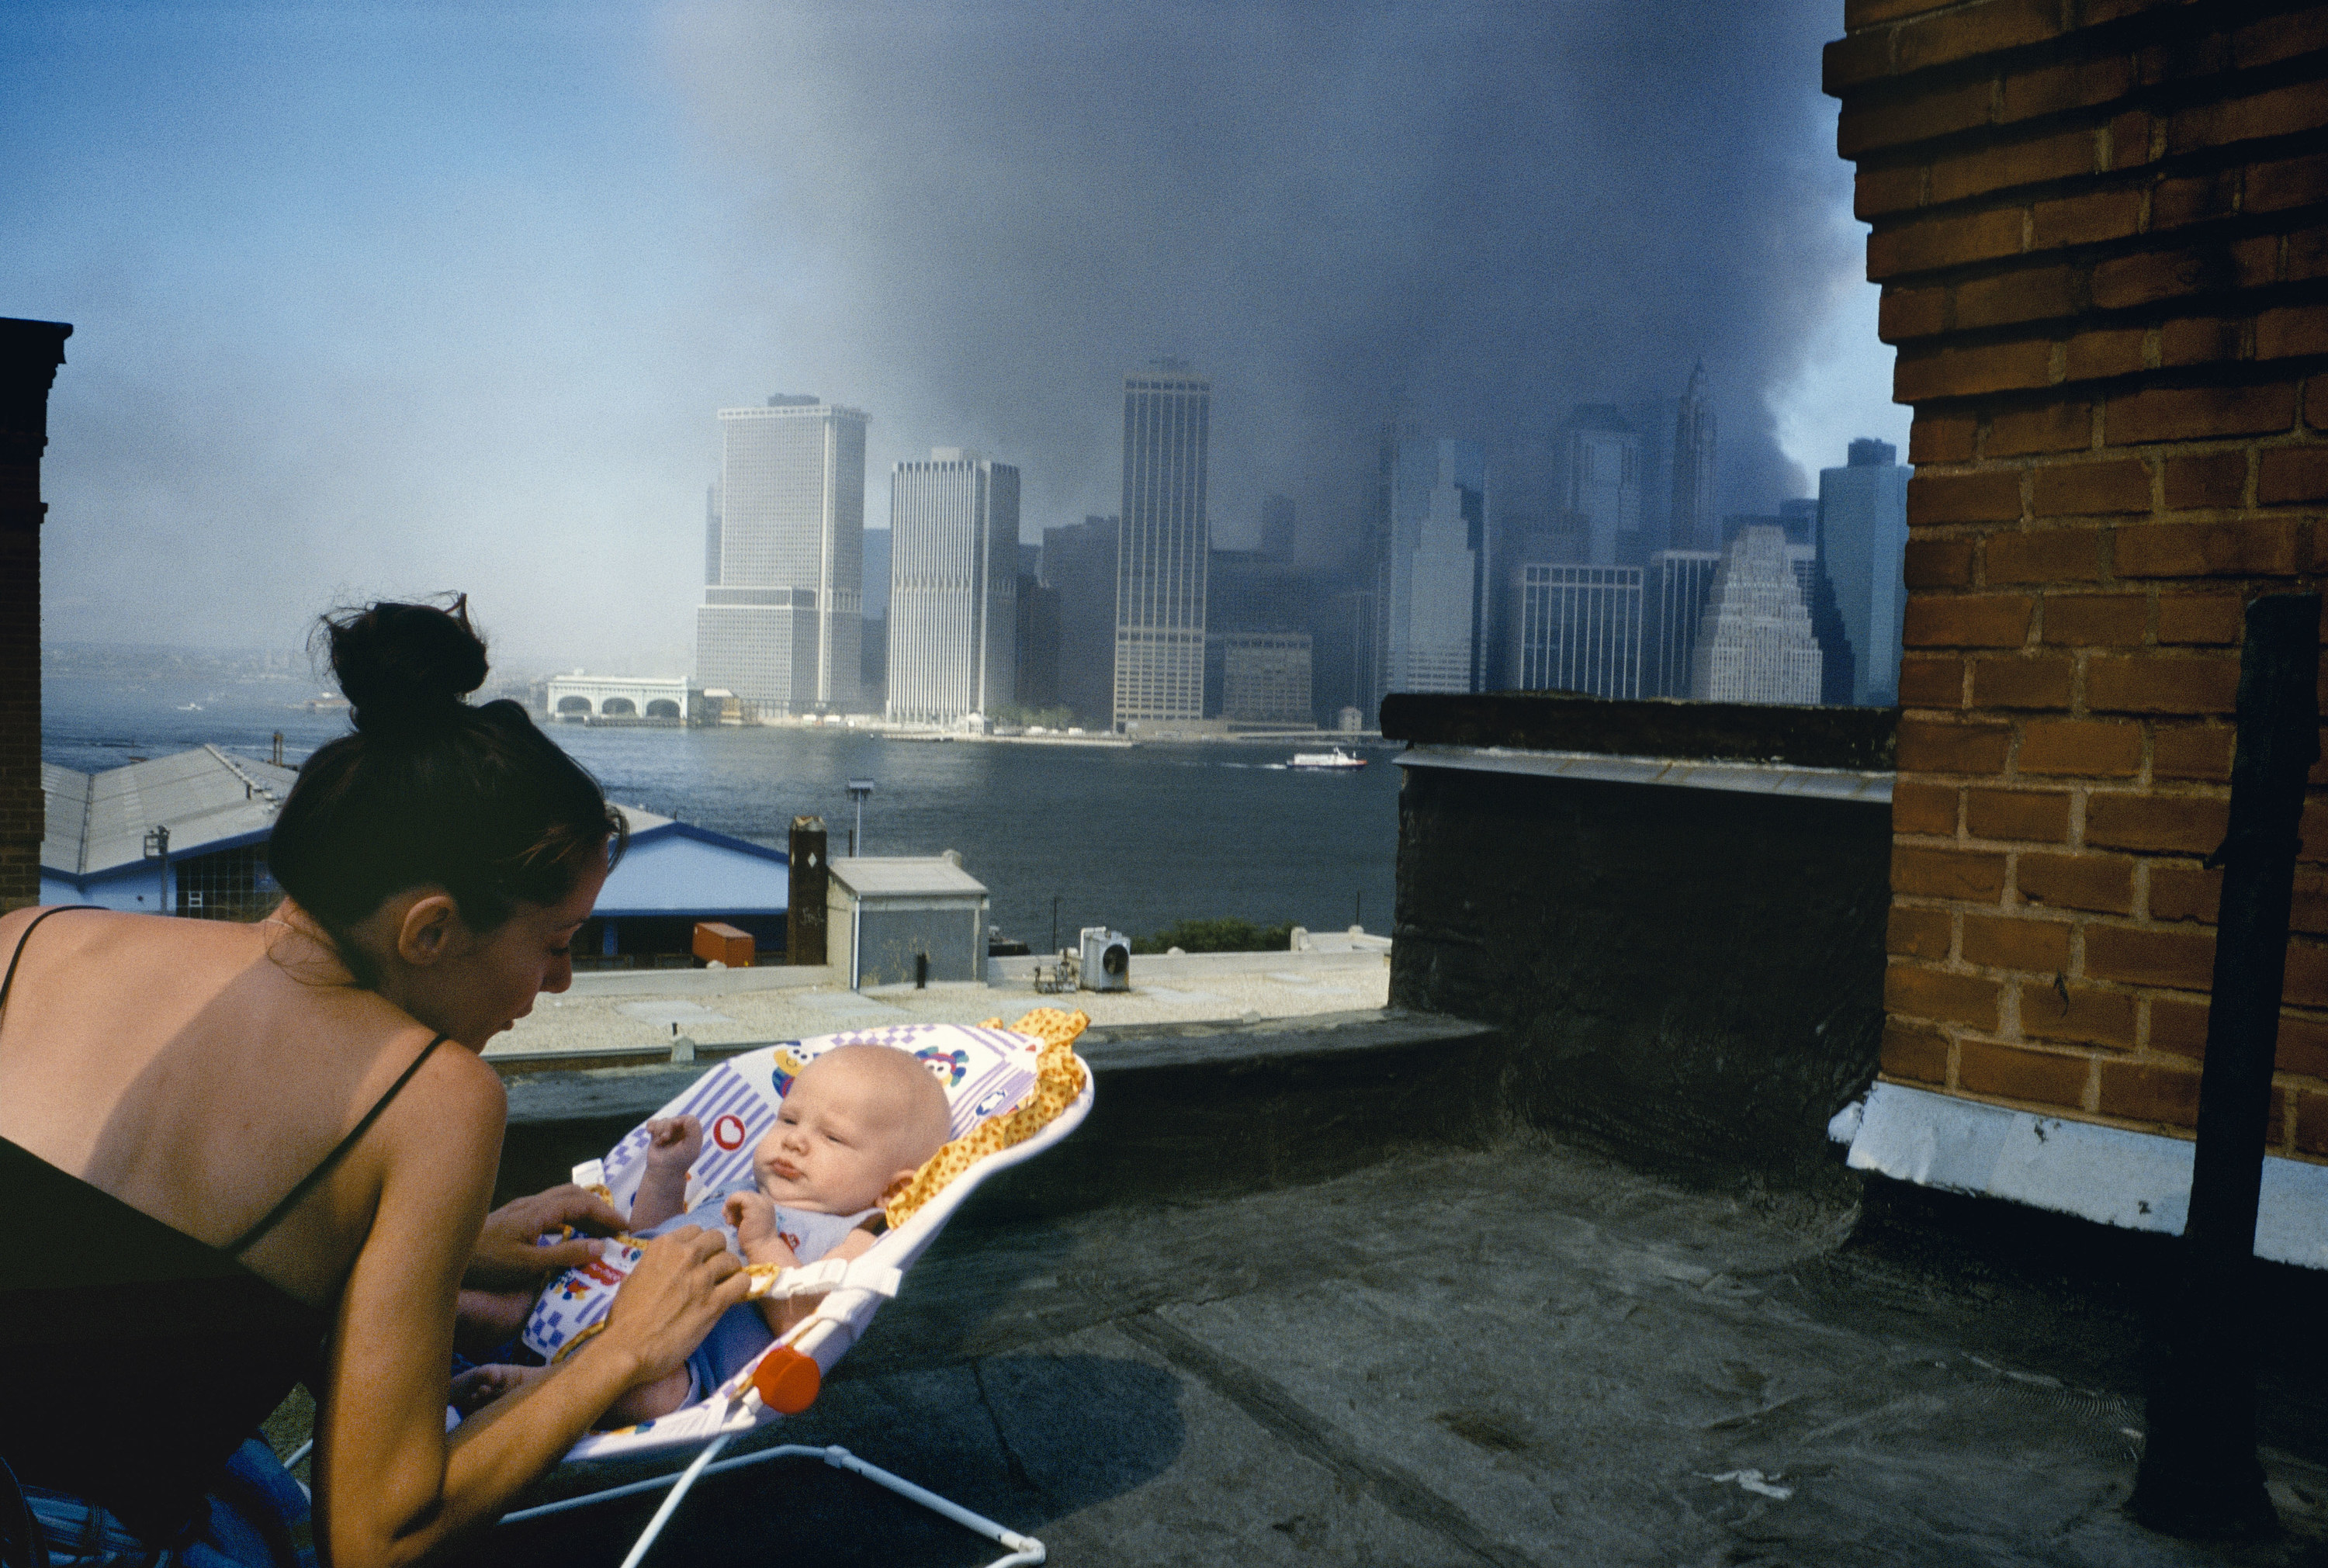 A woman with a baby on the roof overlooking the New York skyline, which is obscured with smoke from the towers